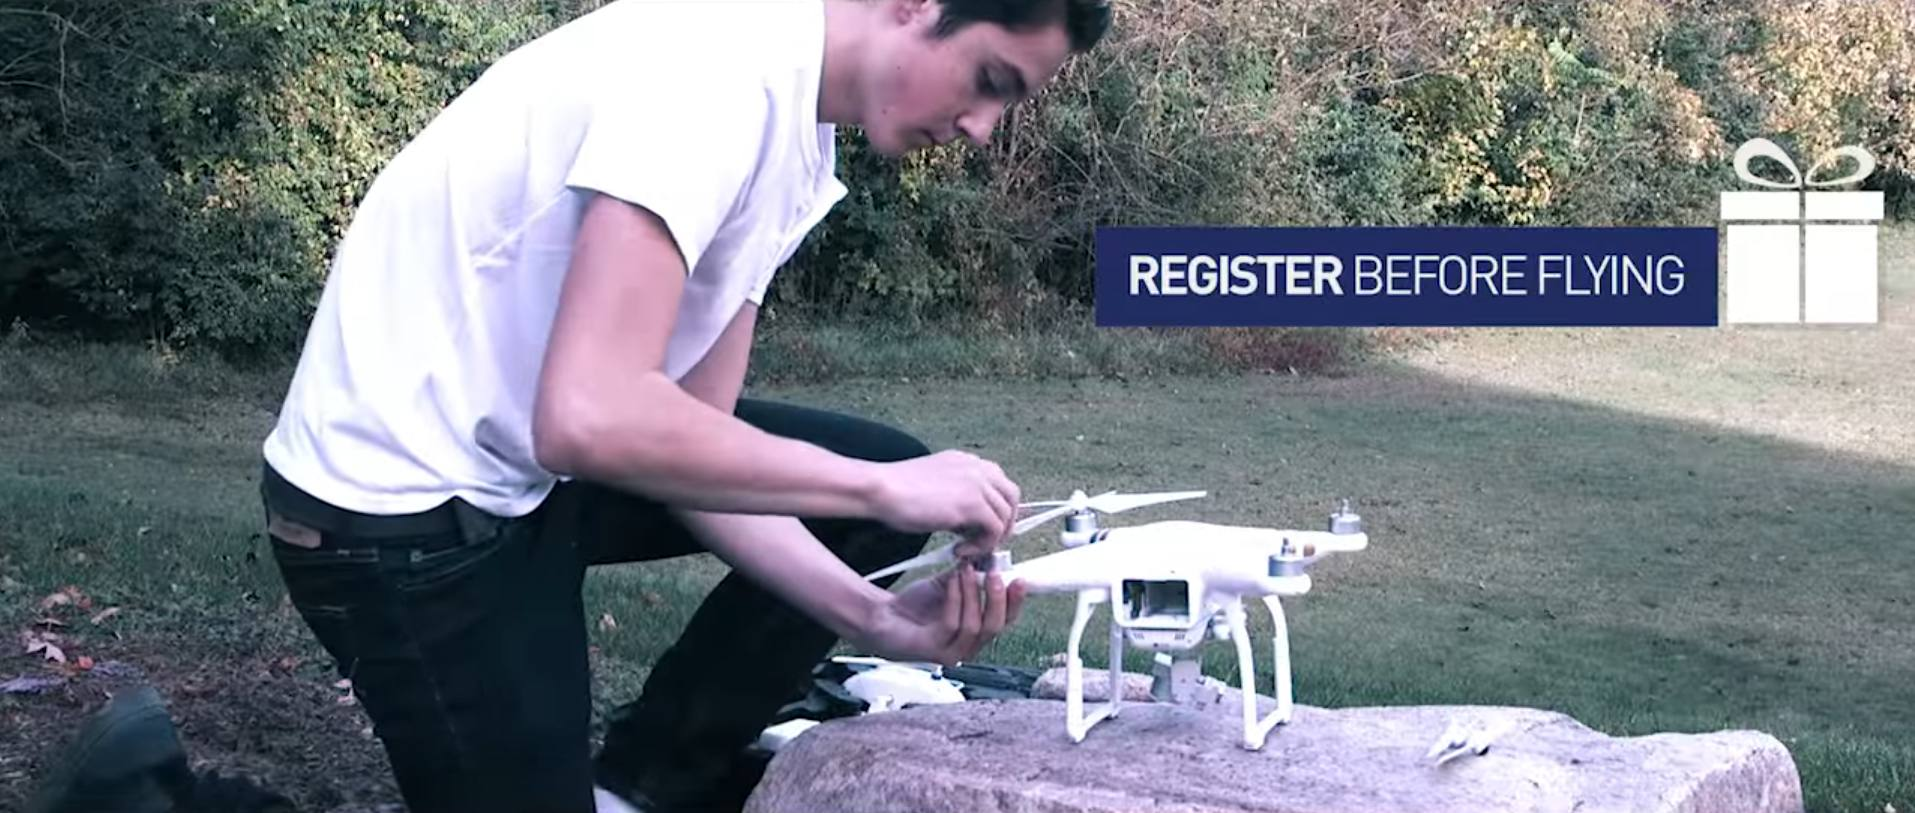 register-before-flying